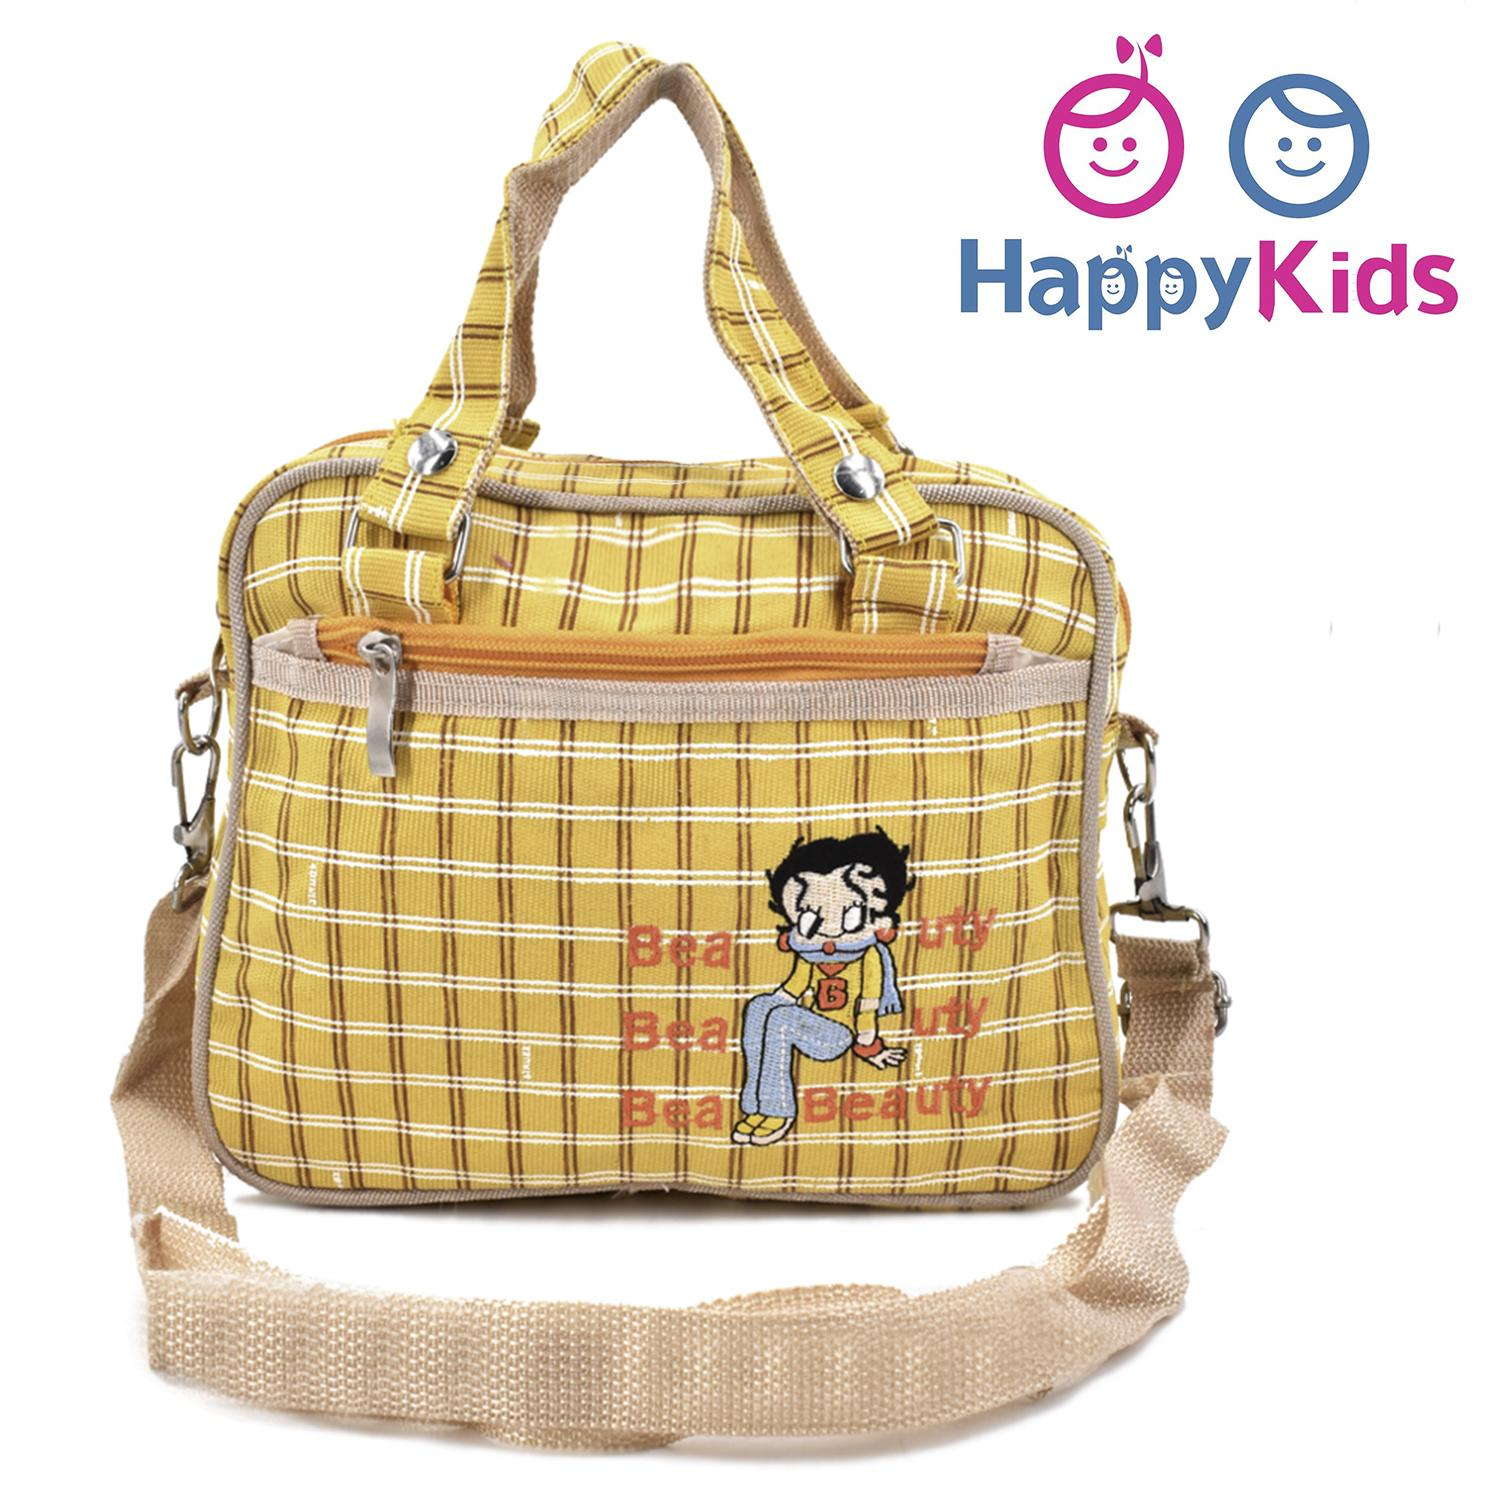 Betty Boop Yellow Checkered Kiddie Lunch Bag With Adjustable And Detachable Shoulder Strap By Happy Kids.